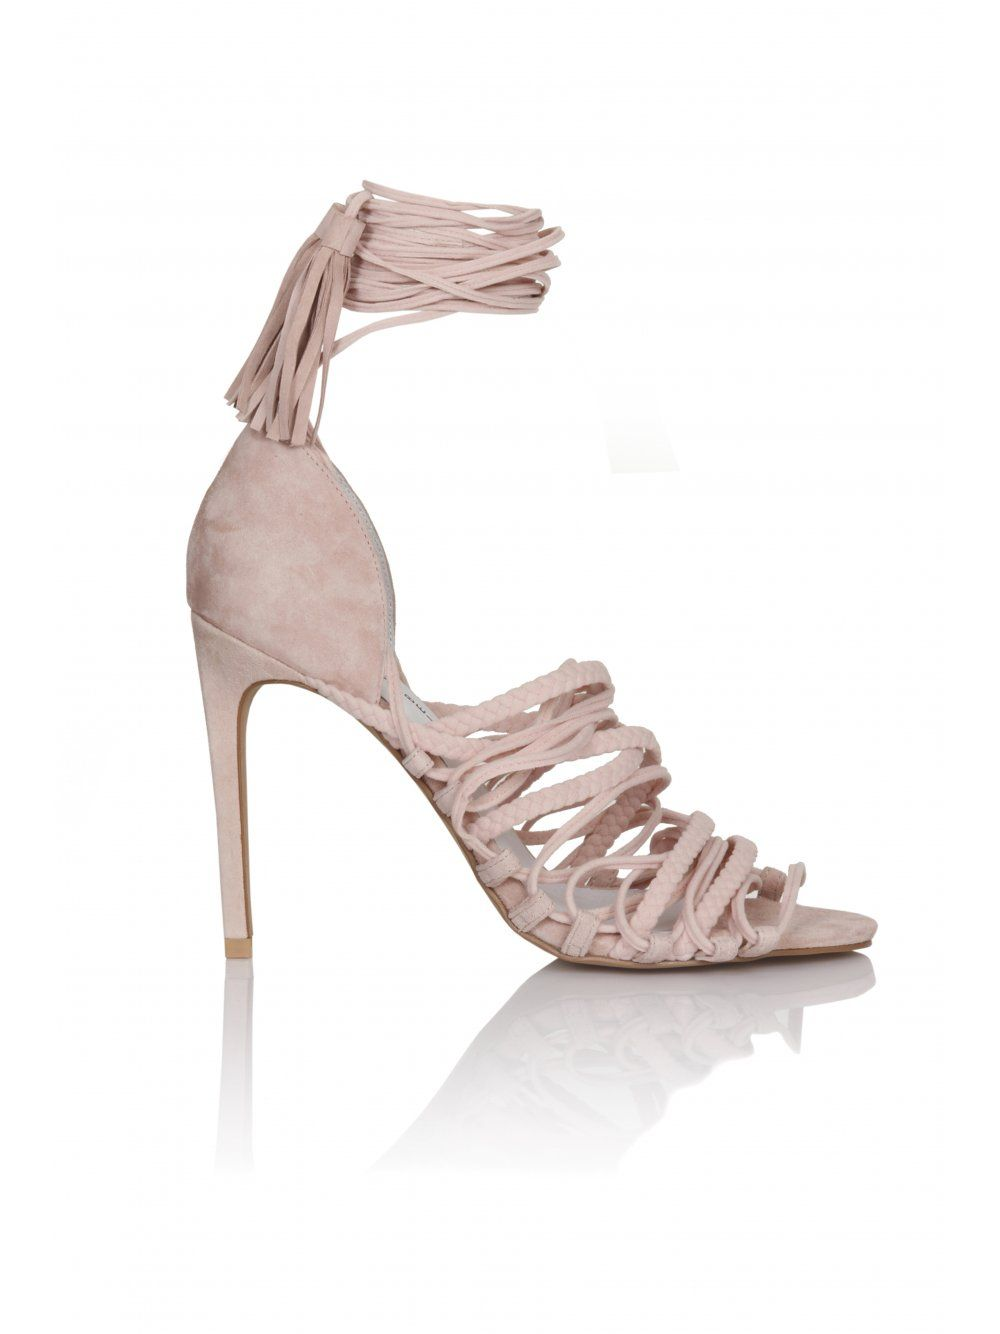 436eed55f6a6 JEFFREY CAMPBELL Sabra Pink Suede Lace Up Sandals - JEFFREY CAMPBELL from  Lavish Alice UK